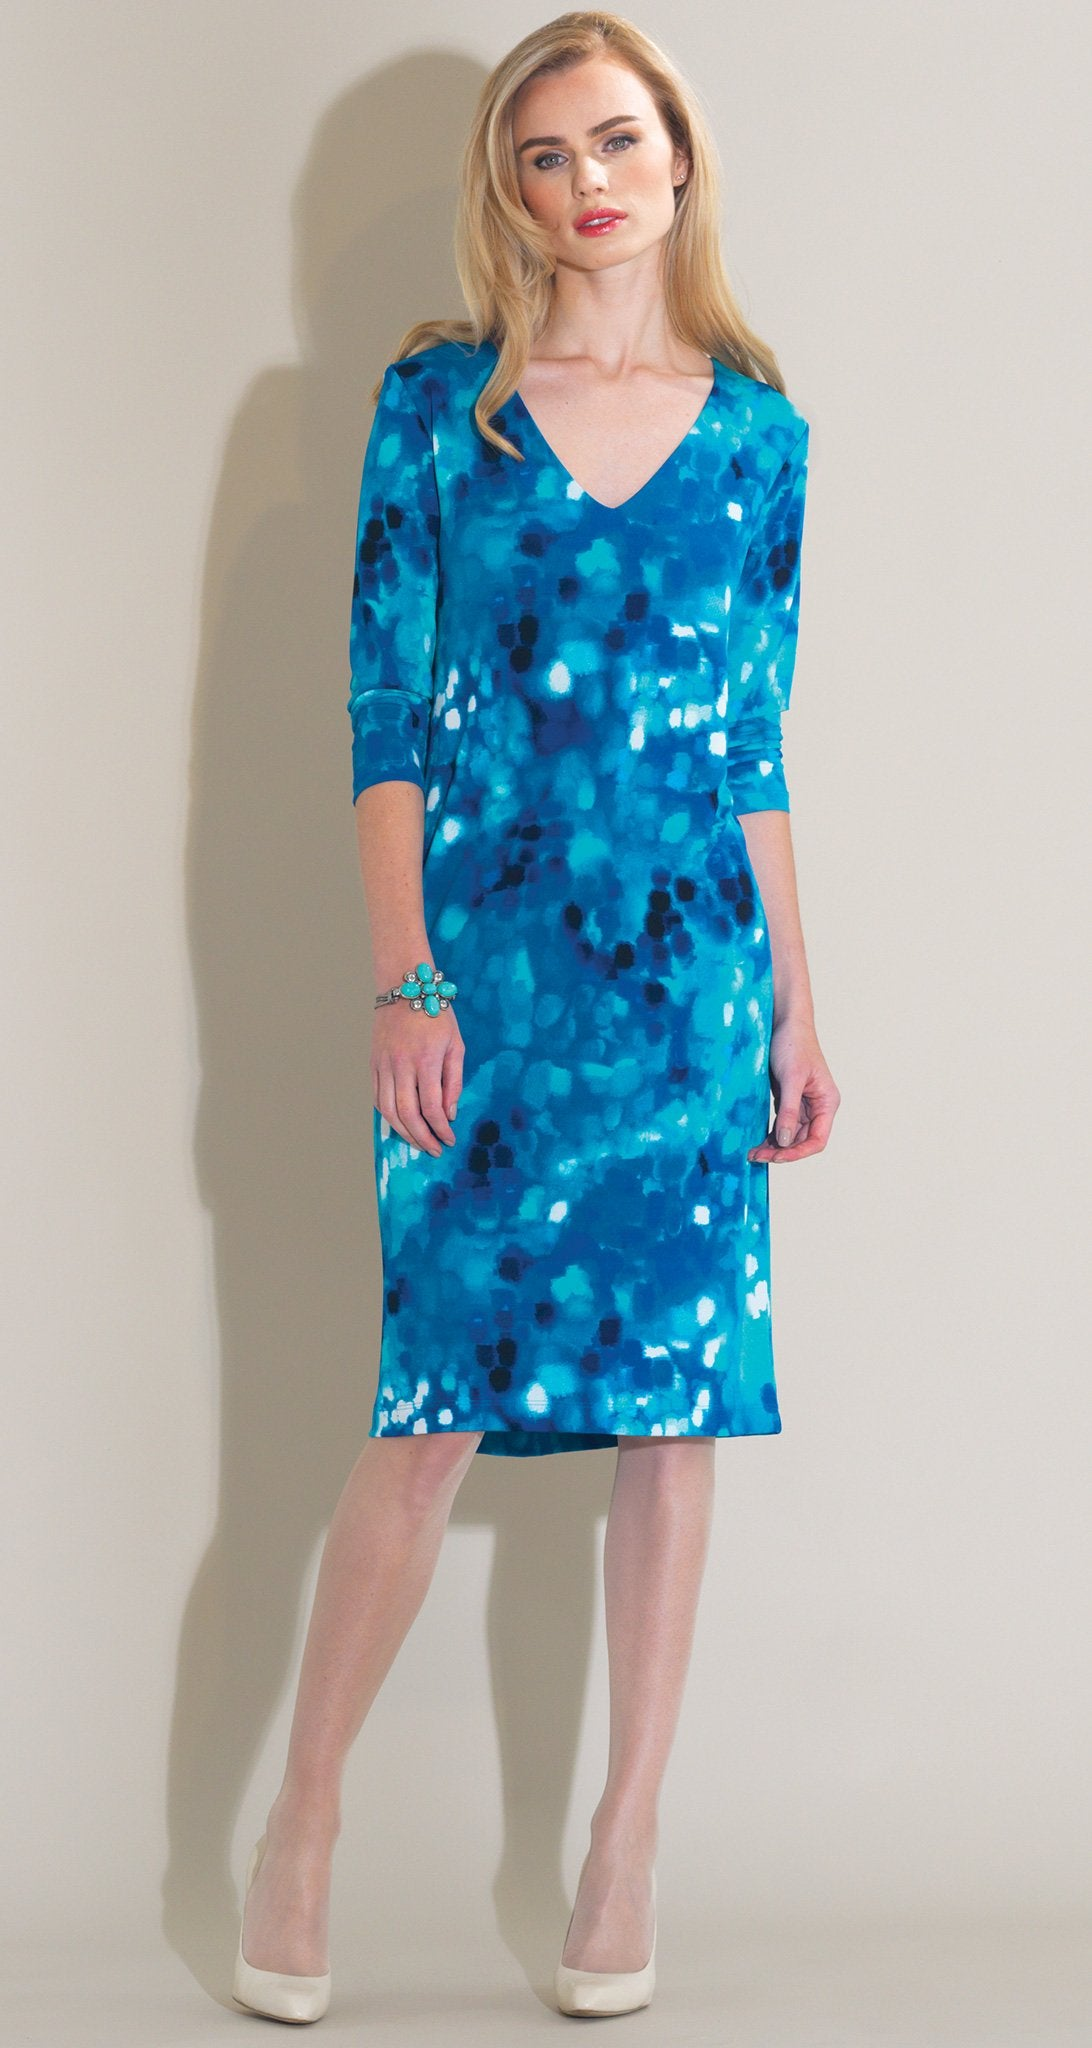 Water Drop Print V-Neck Dress - Turquoise Multi